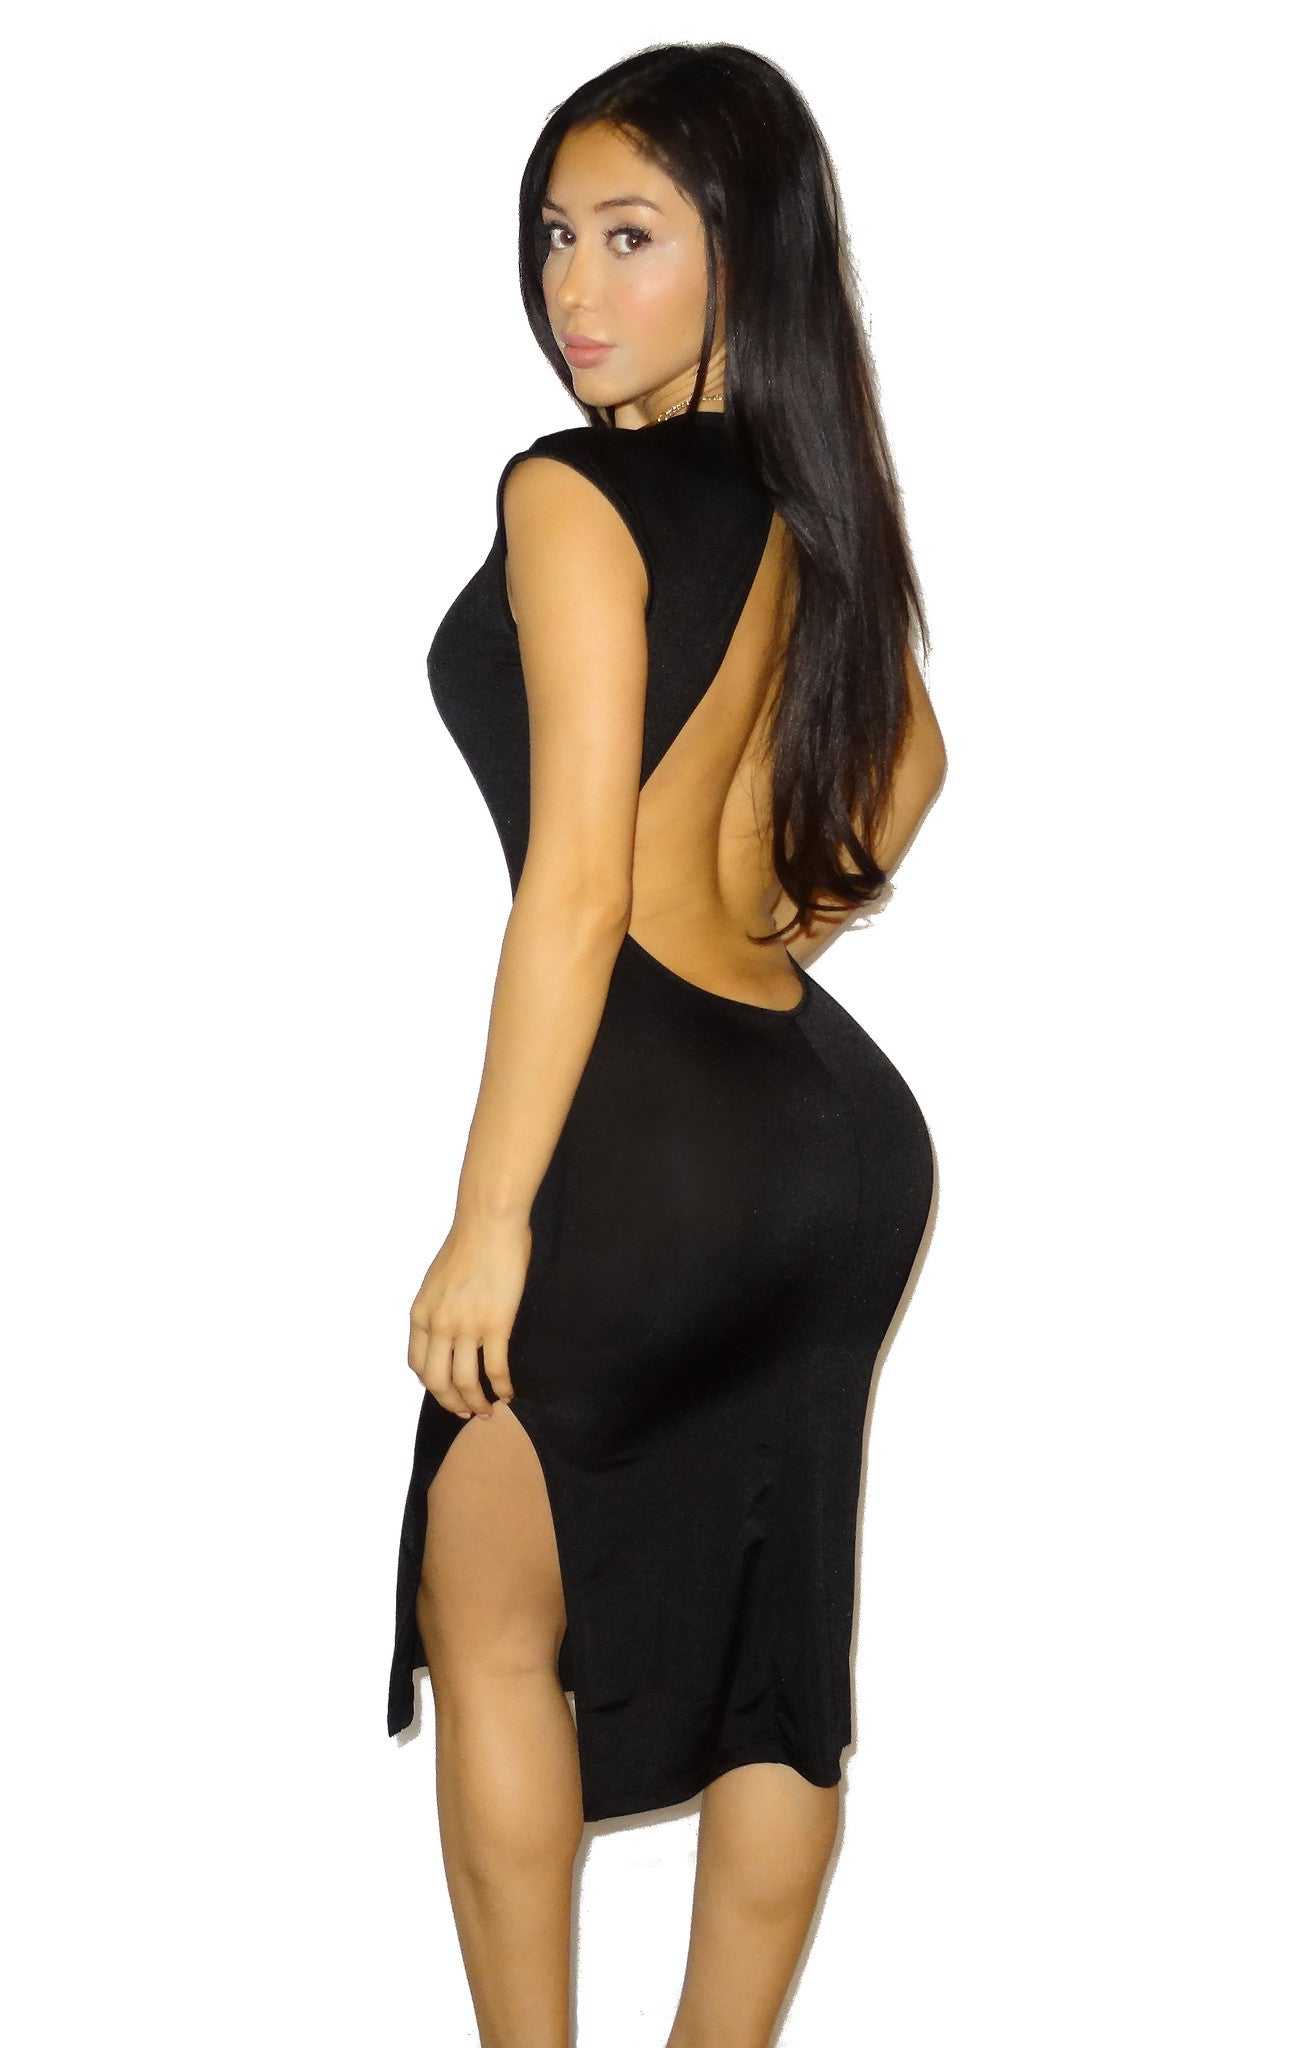 Hekate Night Dress - waist trainer, dress - waist trainer, swancoast.com ann chery,